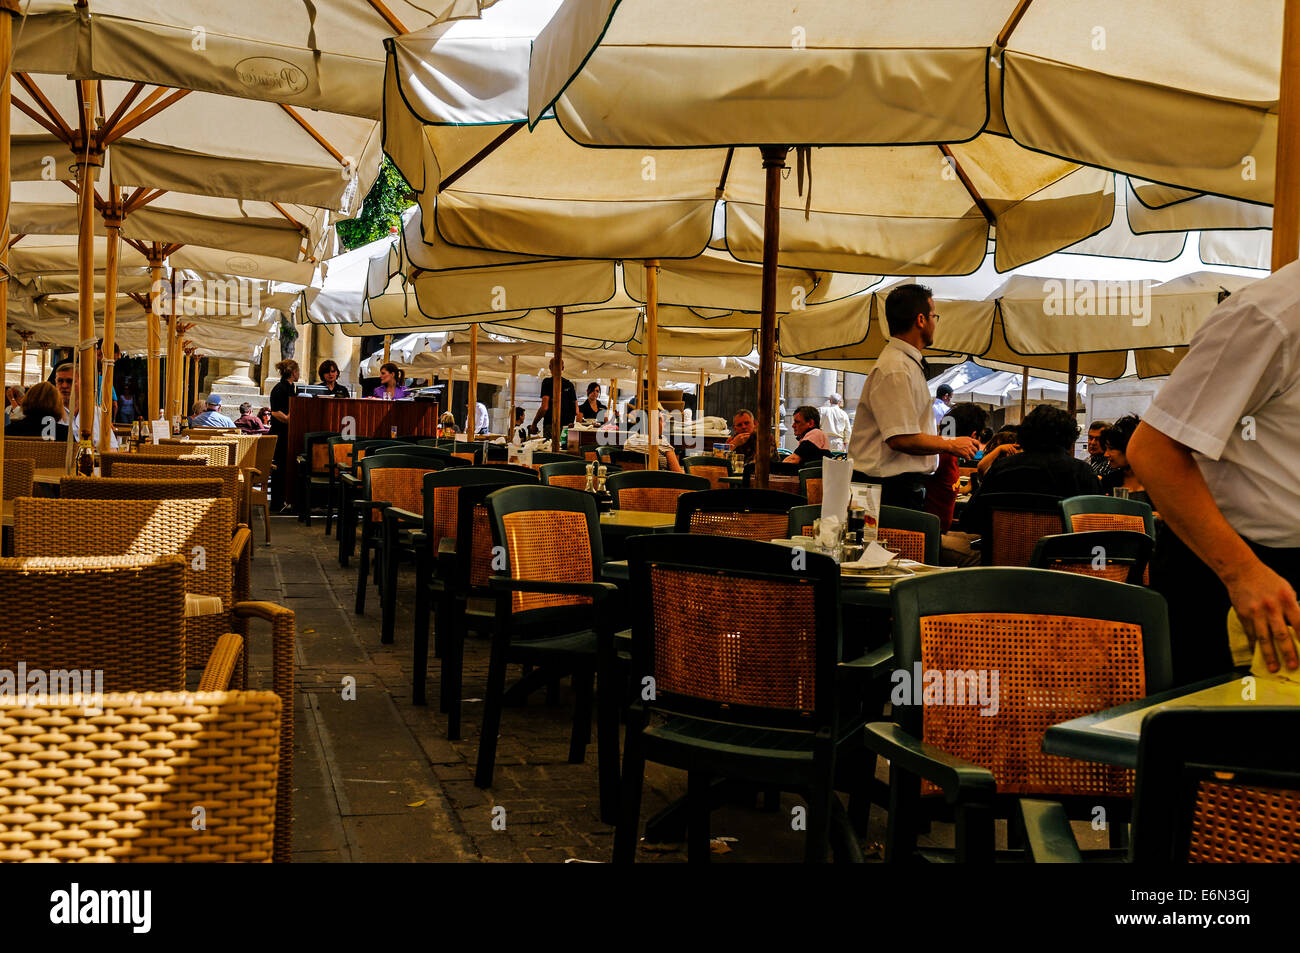 Diners using a typical restaurant on the harbour front providing food and drink in comfortable shady surroundings, - Stock Image